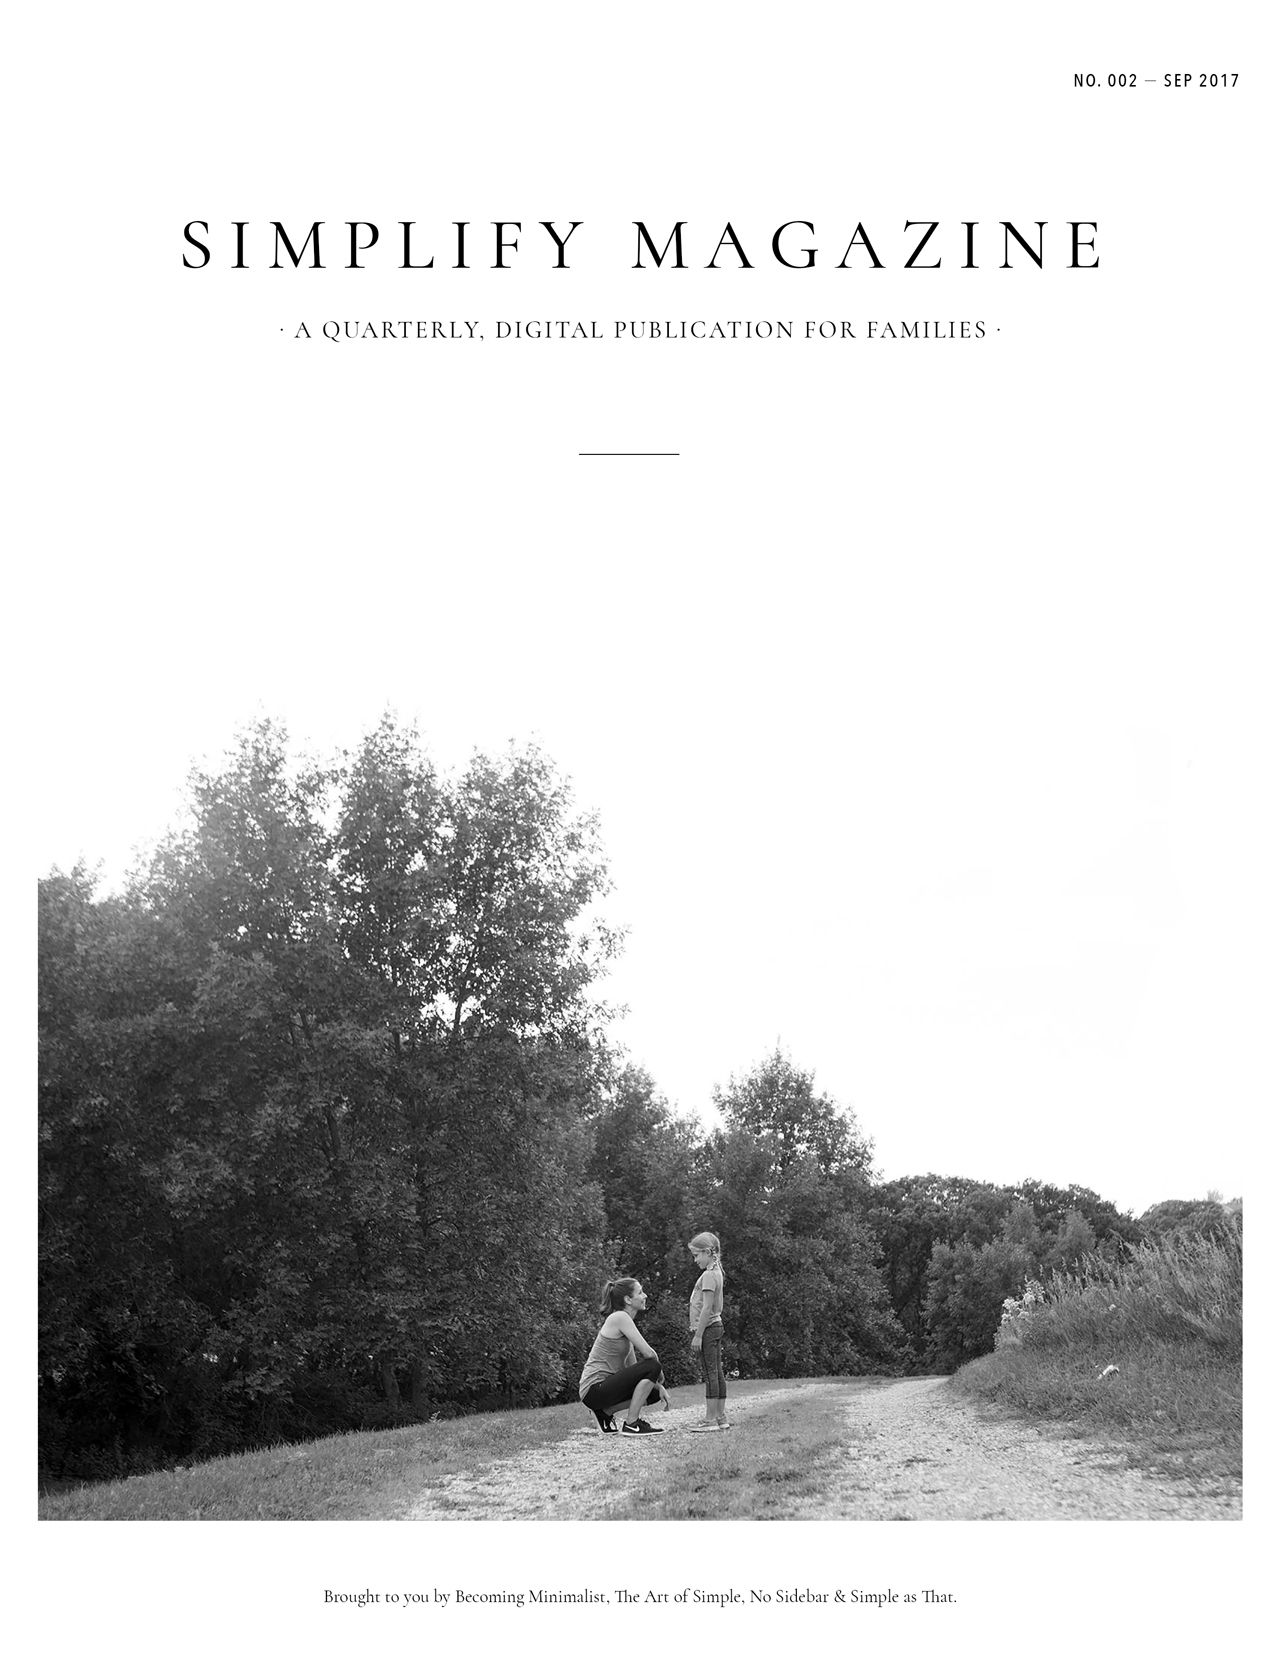 Simplify Magazine Issue #002